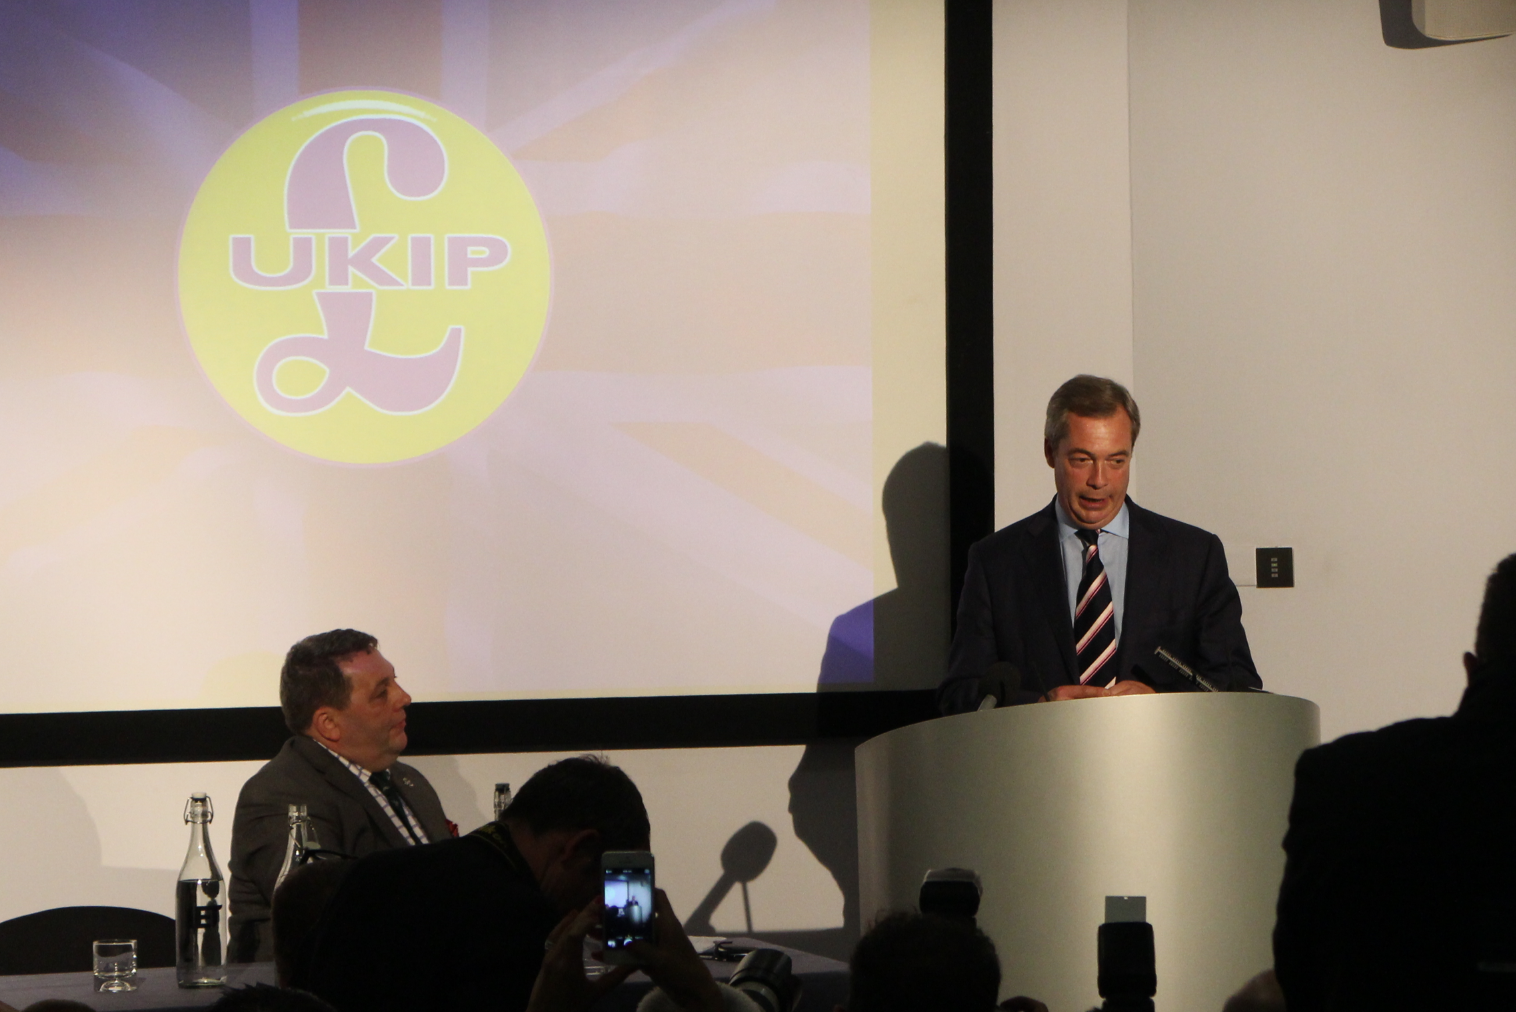 Farage in Scotland: 'This Is A Fake Referendum Offering Sham Independence'